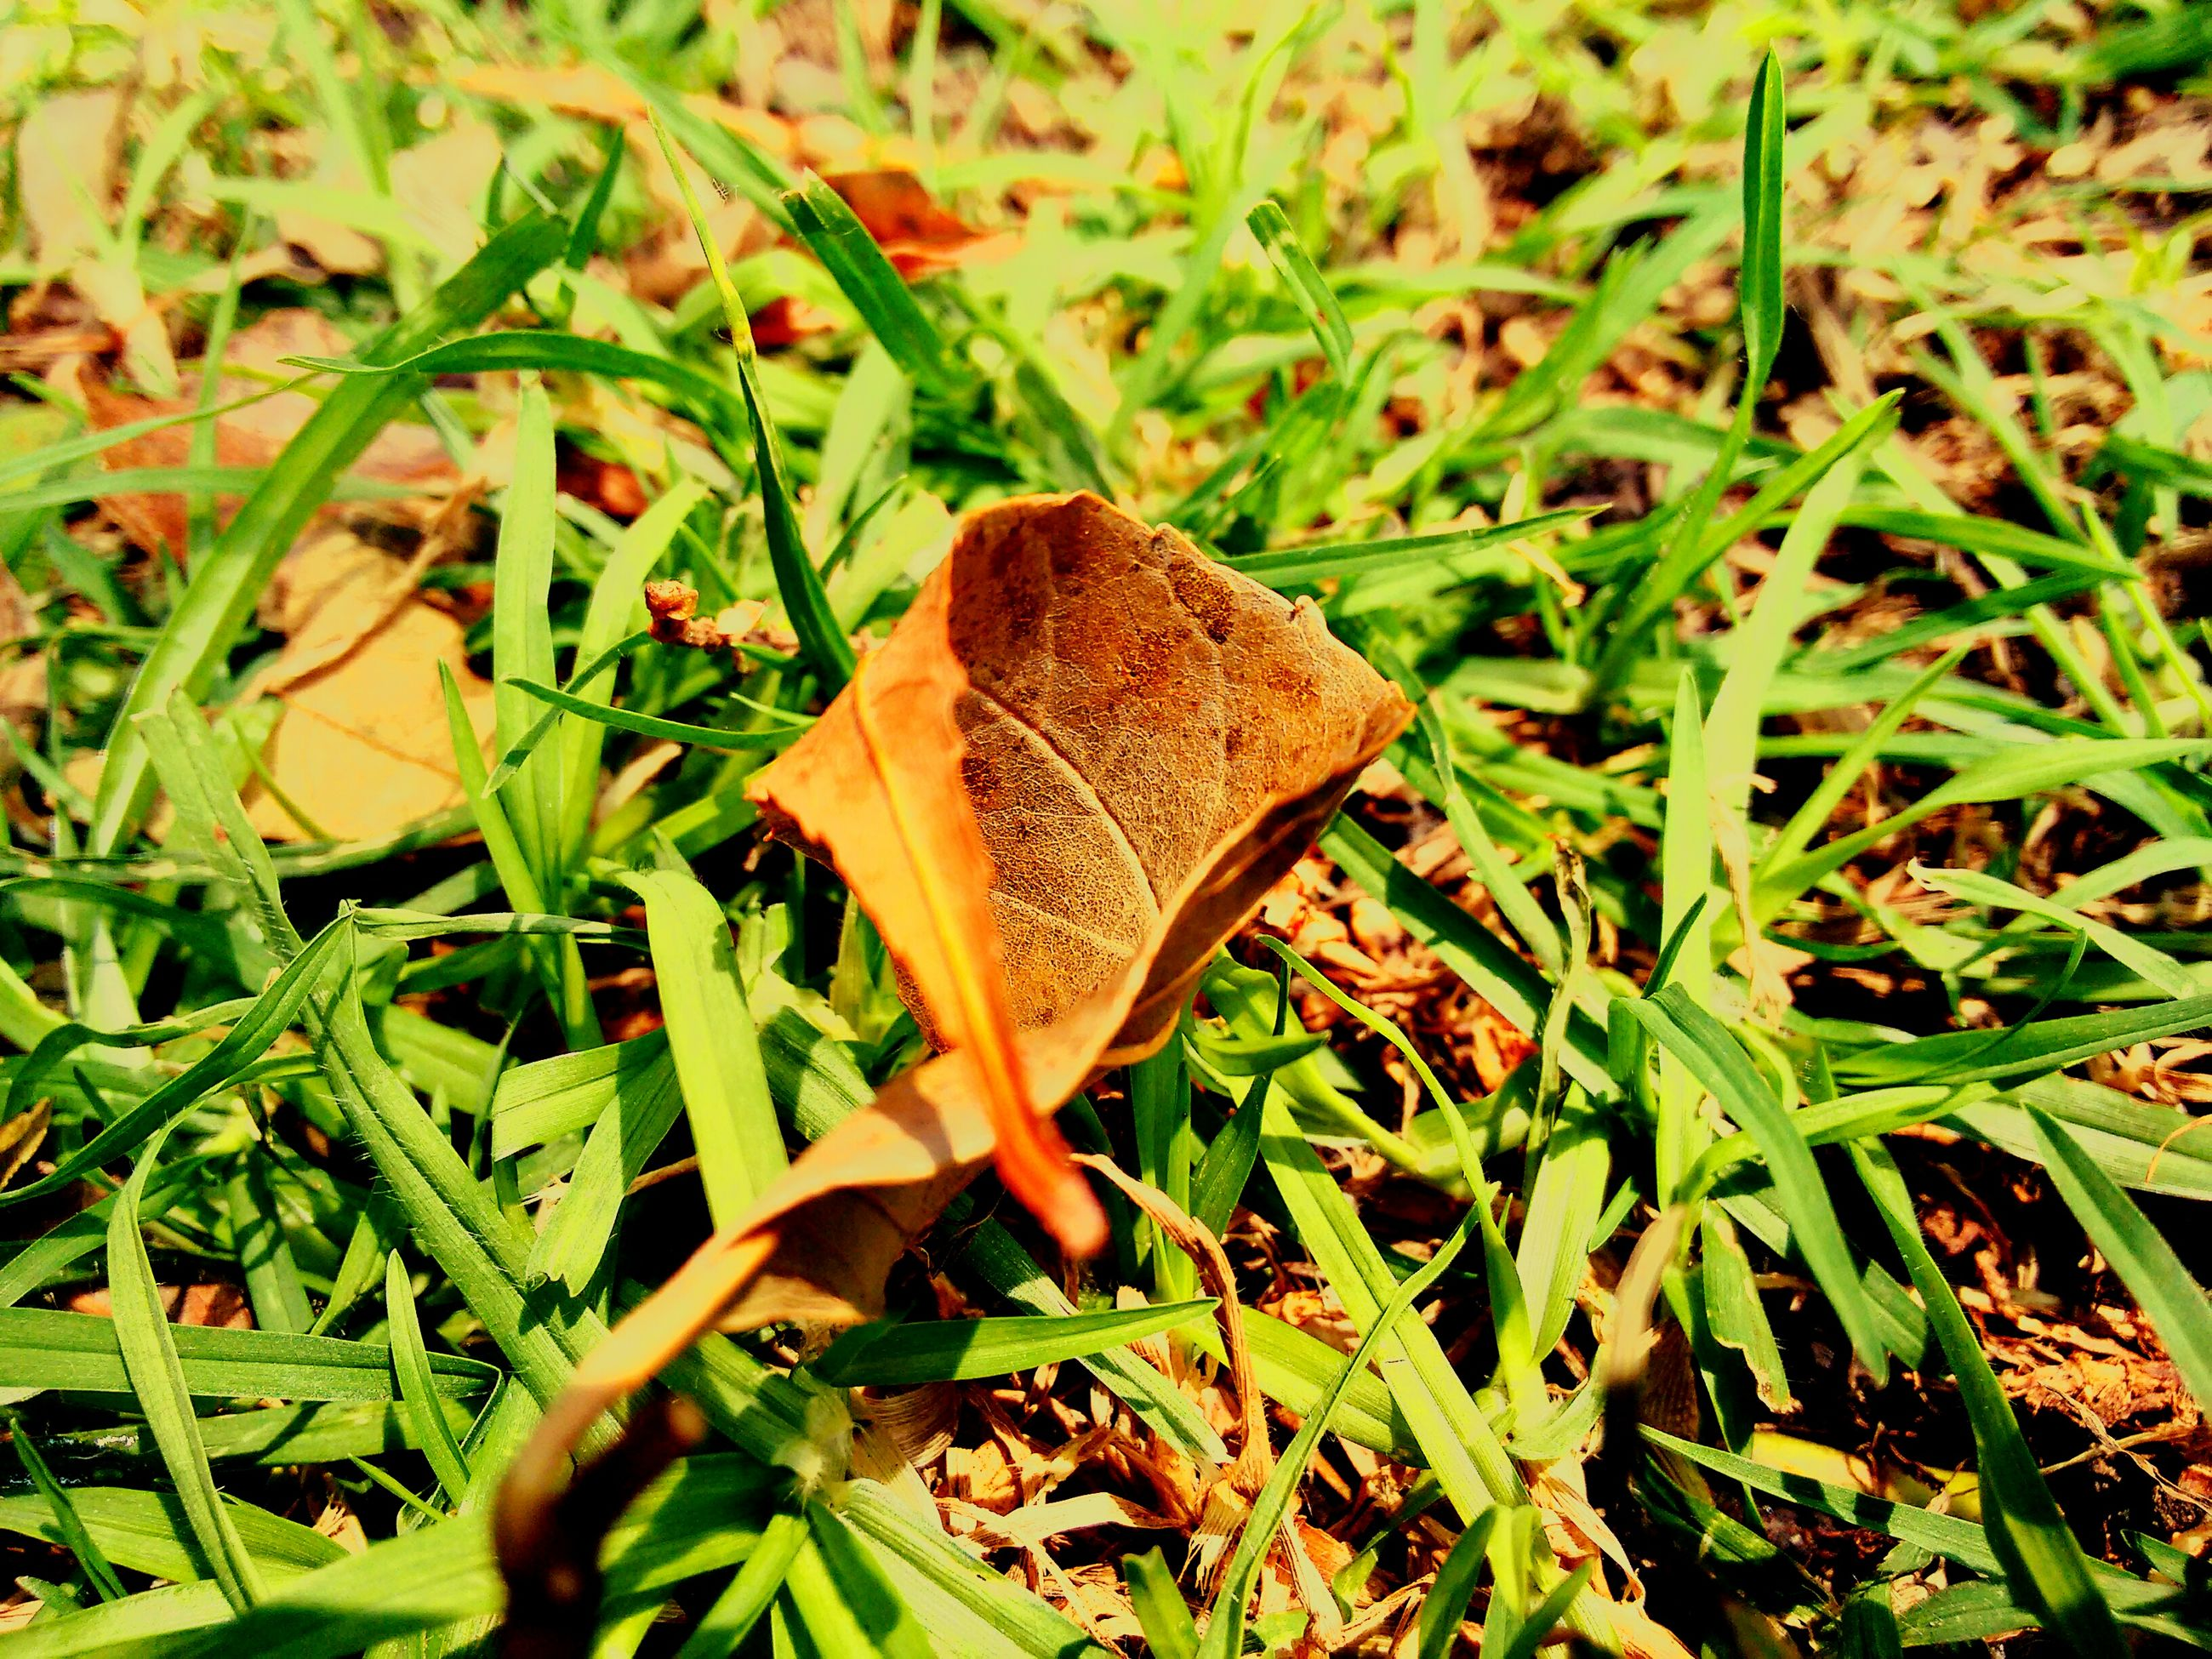 grass, field, grassy, green color, leaf, growth, nature, mushroom, close-up, fungus, plant, selective focus, beauty in nature, dry, day, toadstool, tranquility, fragility, outdoors, focus on foreground